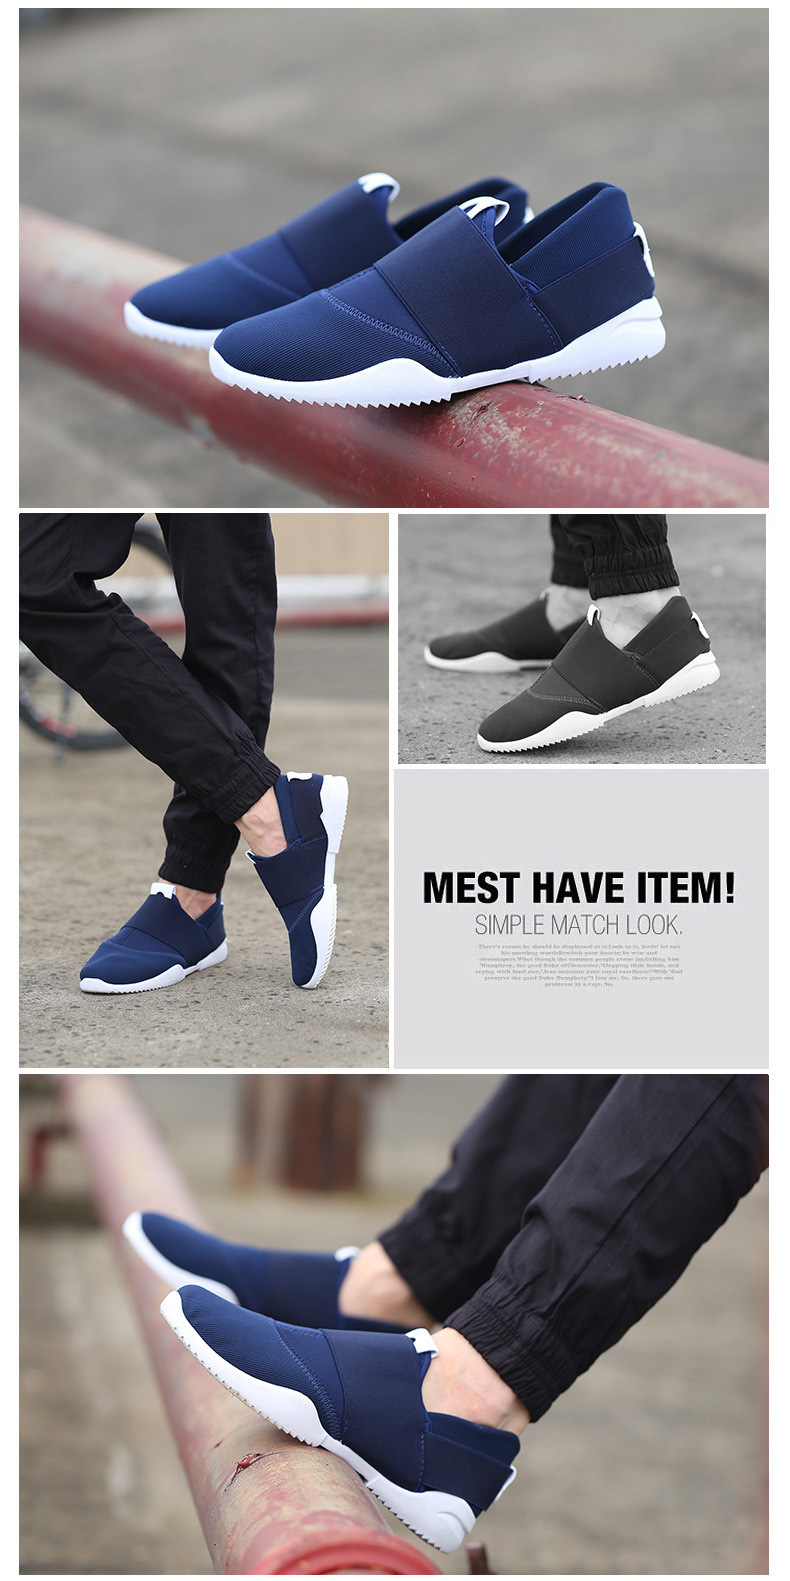 Men Slip-Ons Higher Shoes Men's Casual Shoes Breathable Canvas Sneakers Shoes For Men blue 39 2